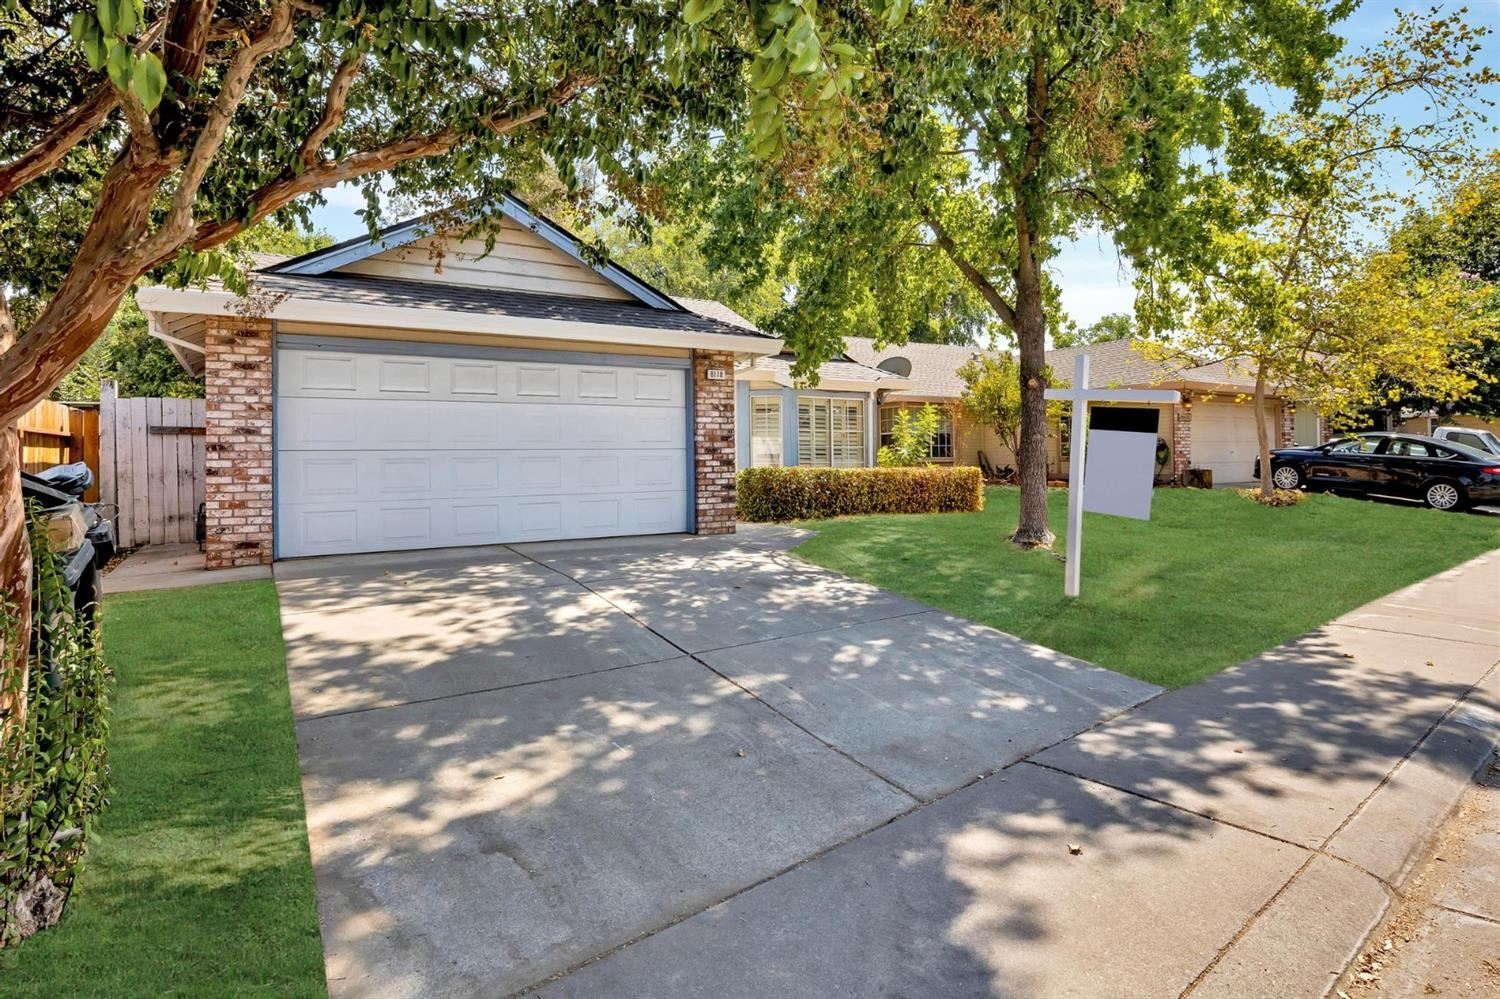 Photo of 8118 Castle Wynd Drive, Antelope, CA 95843 (MLS # 221103722)